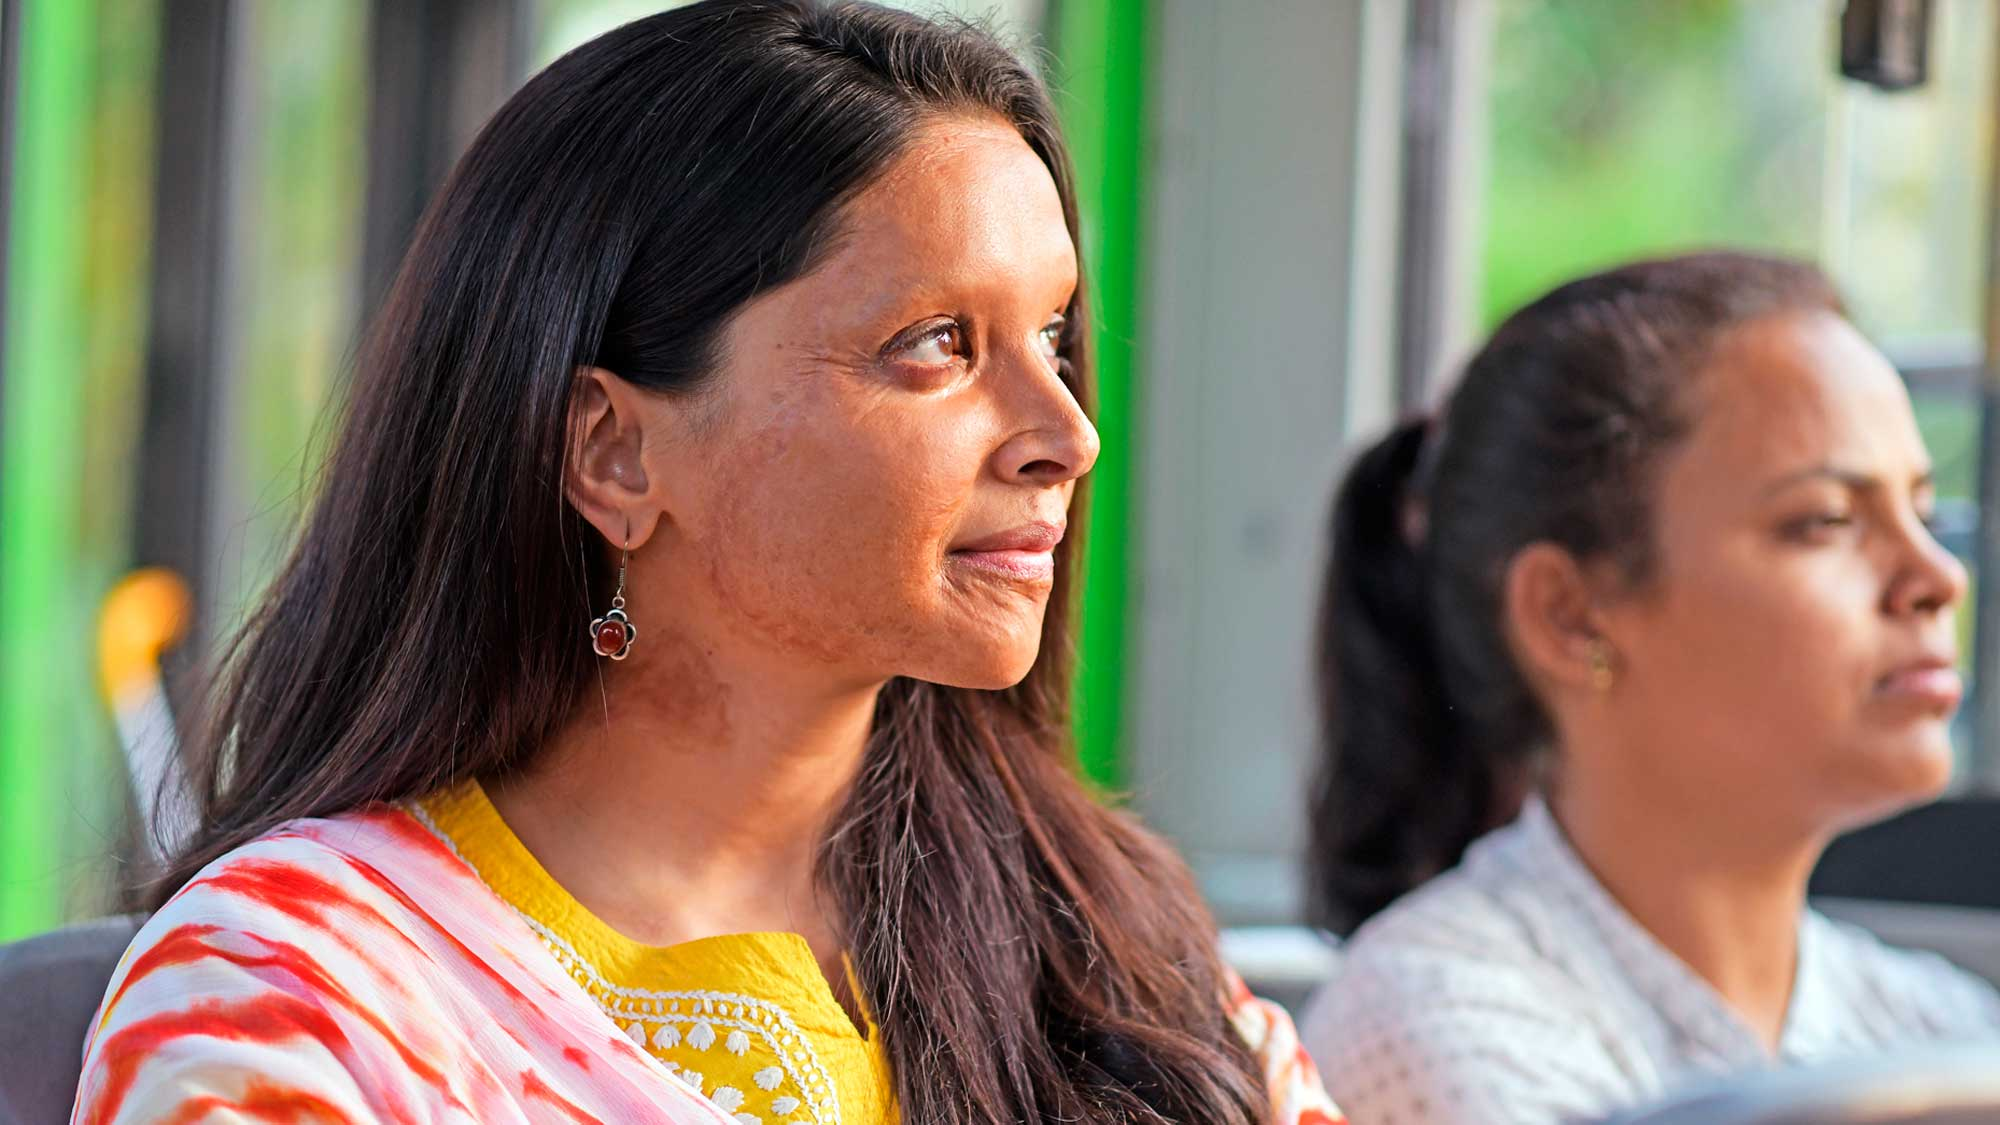 #useyourvoice Laxmi Agarwal: 'He destroyed my face with acid so nobody would love me... but now I'm making my country a safer place ' | Marie Claire